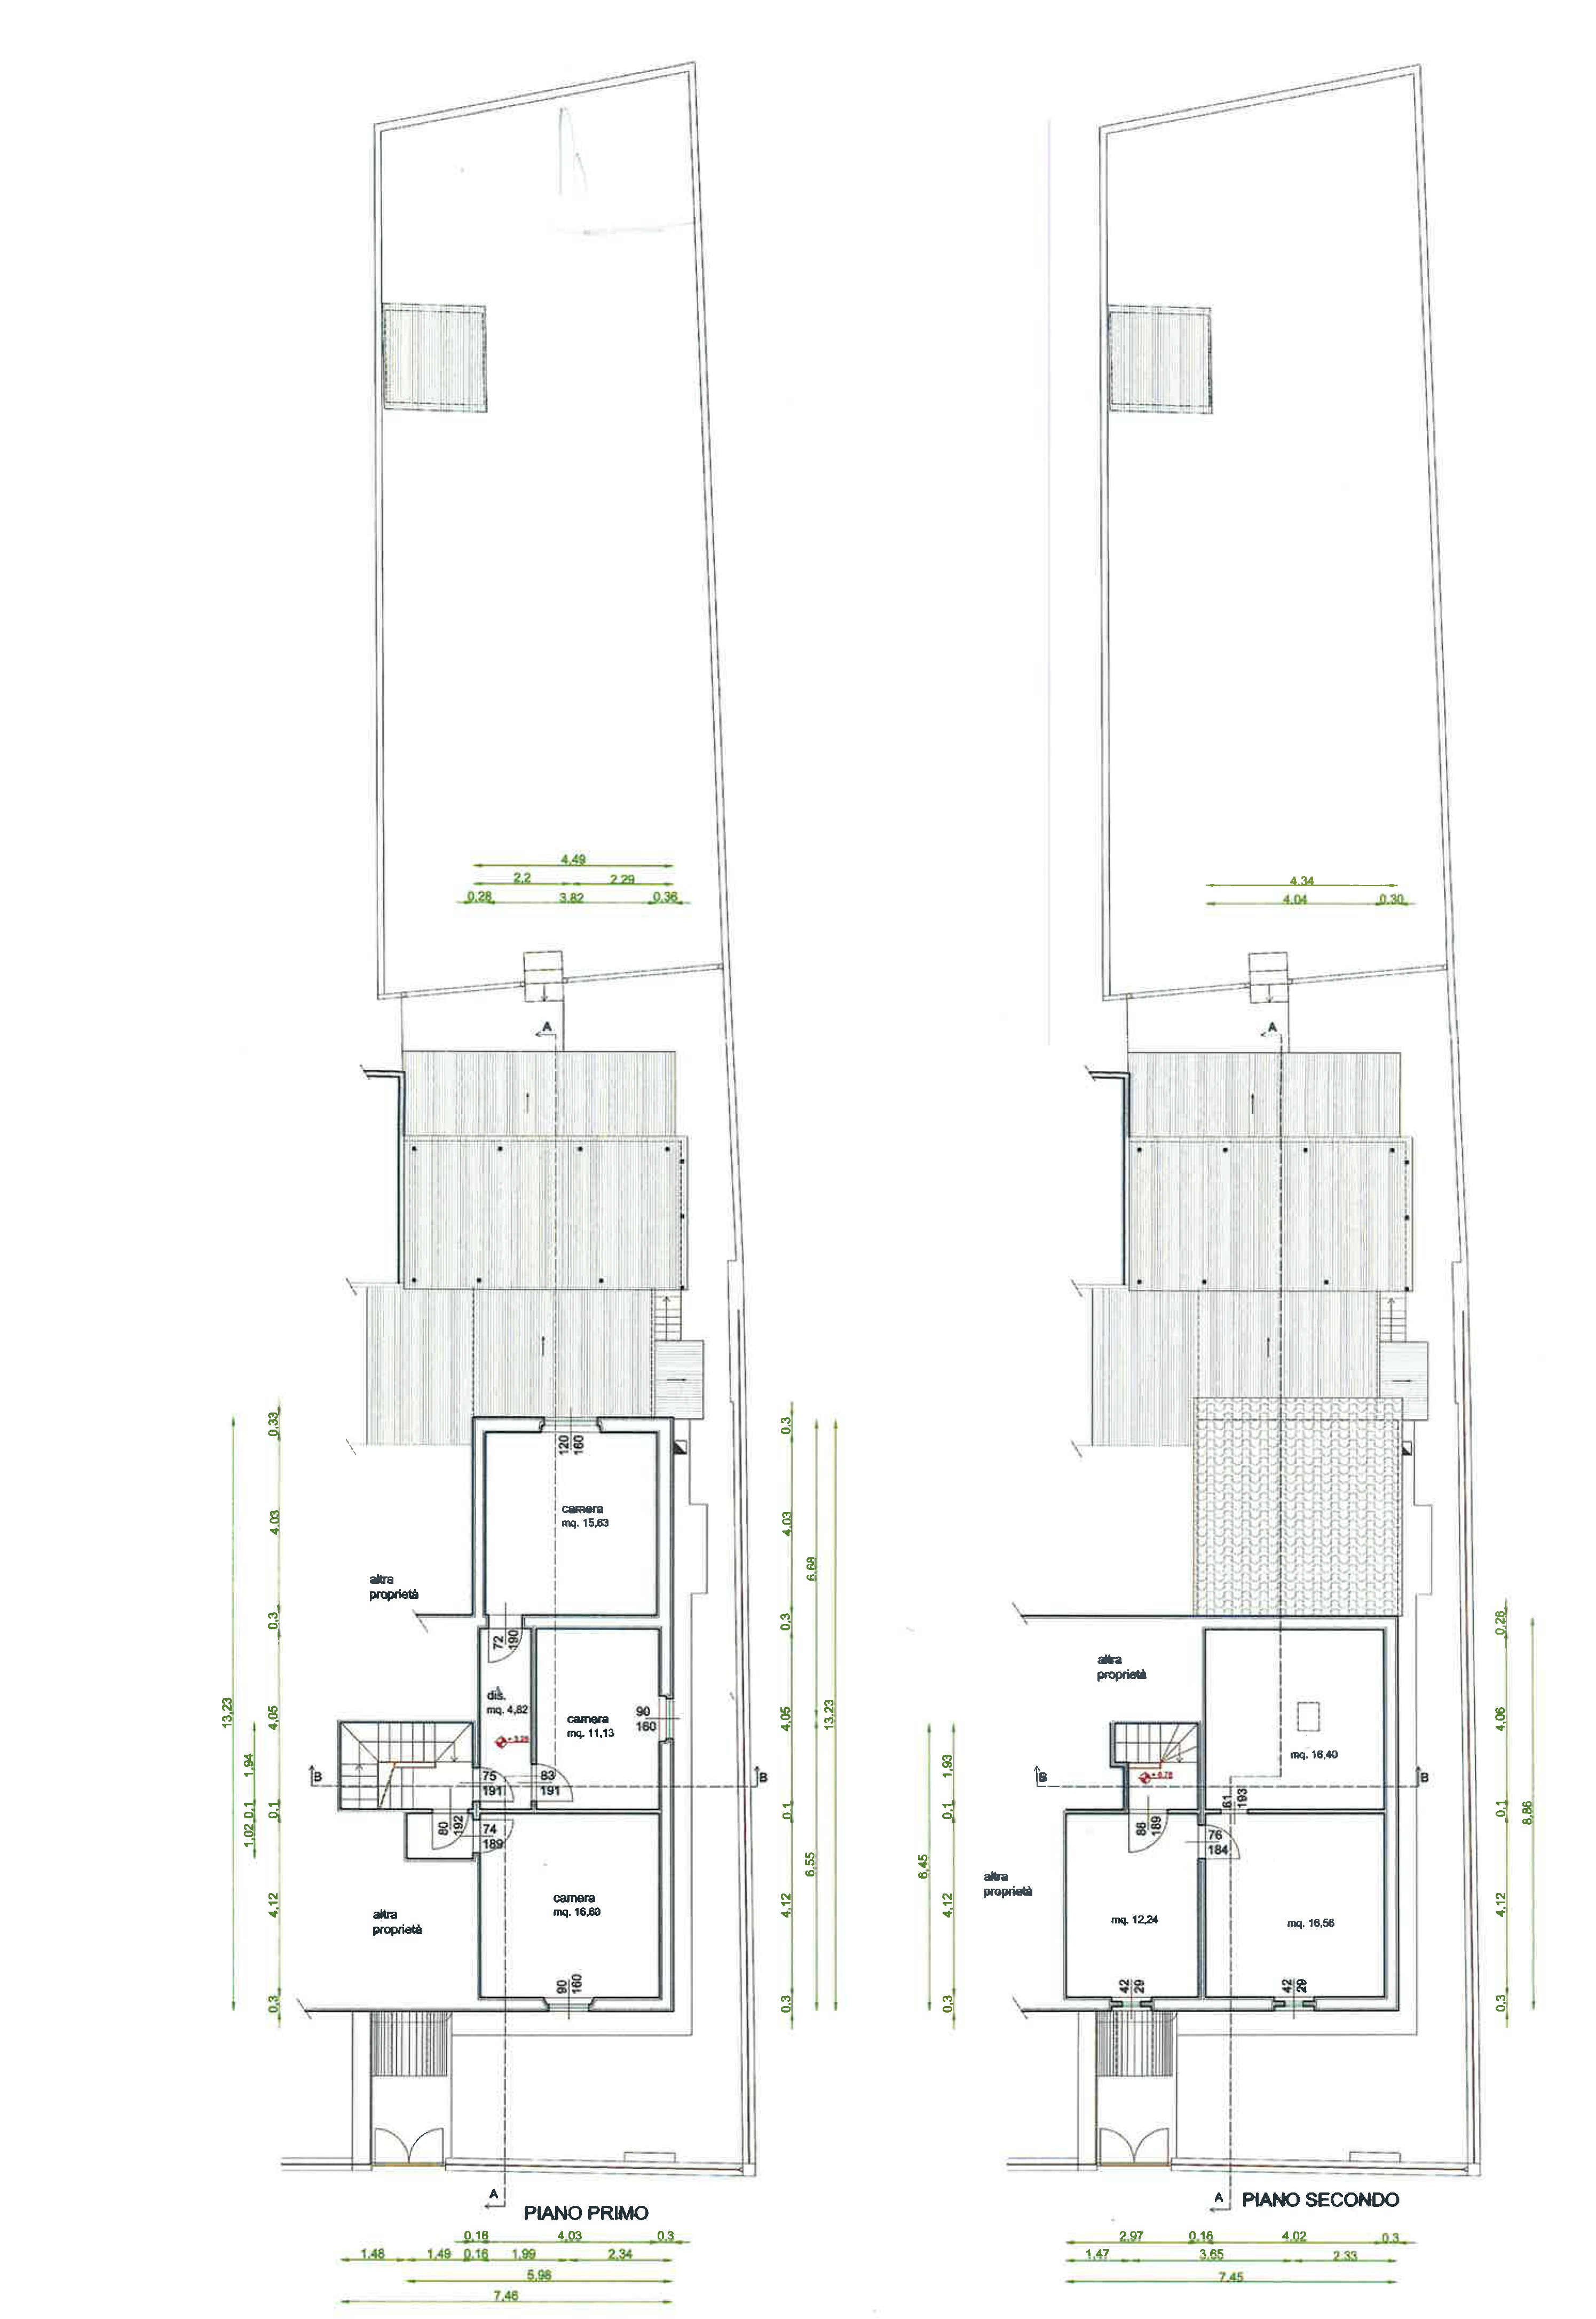 Plan 2/2 for ref. CA015B